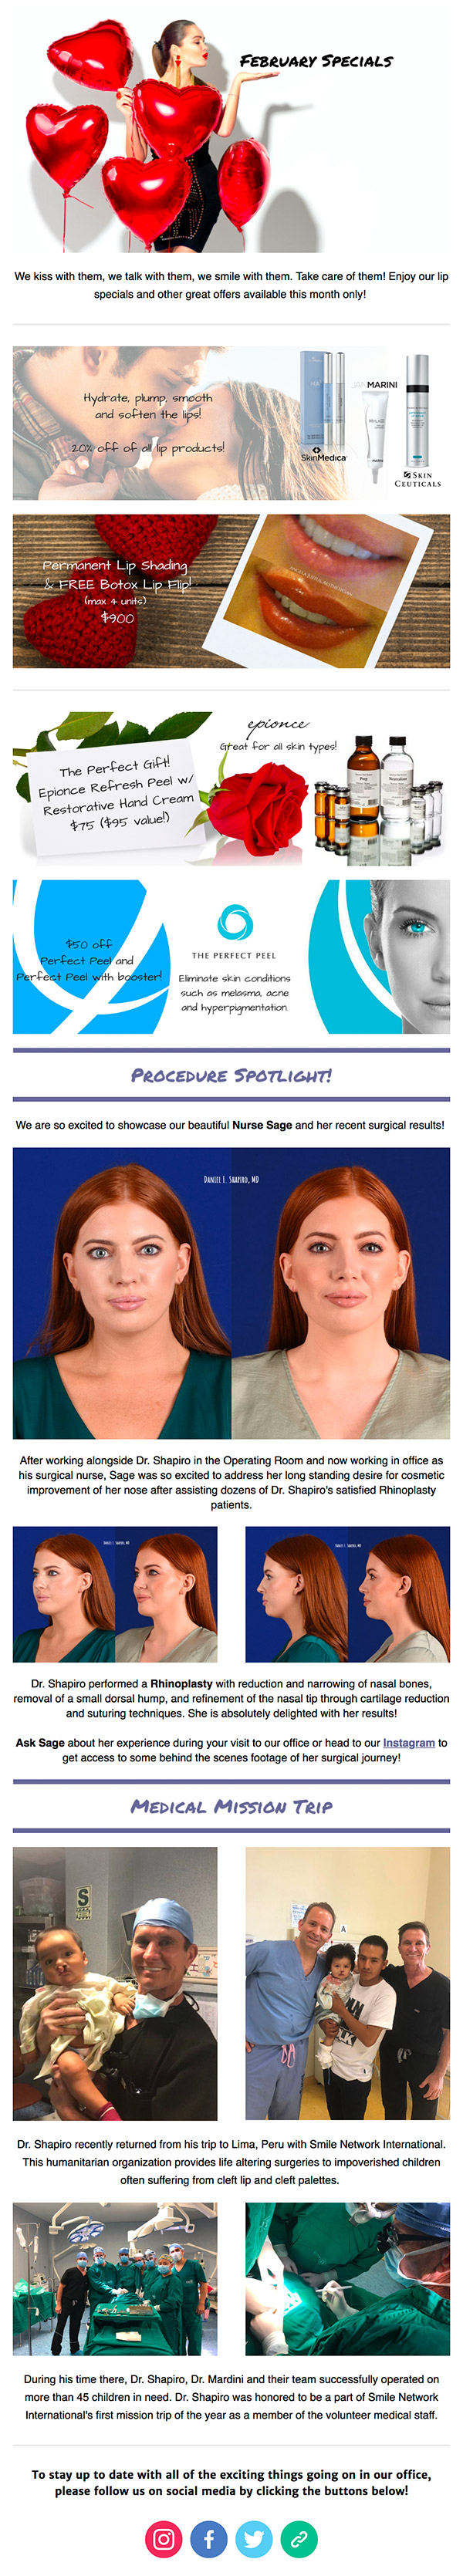 Newsletter, Shapiro Plastic Surgery